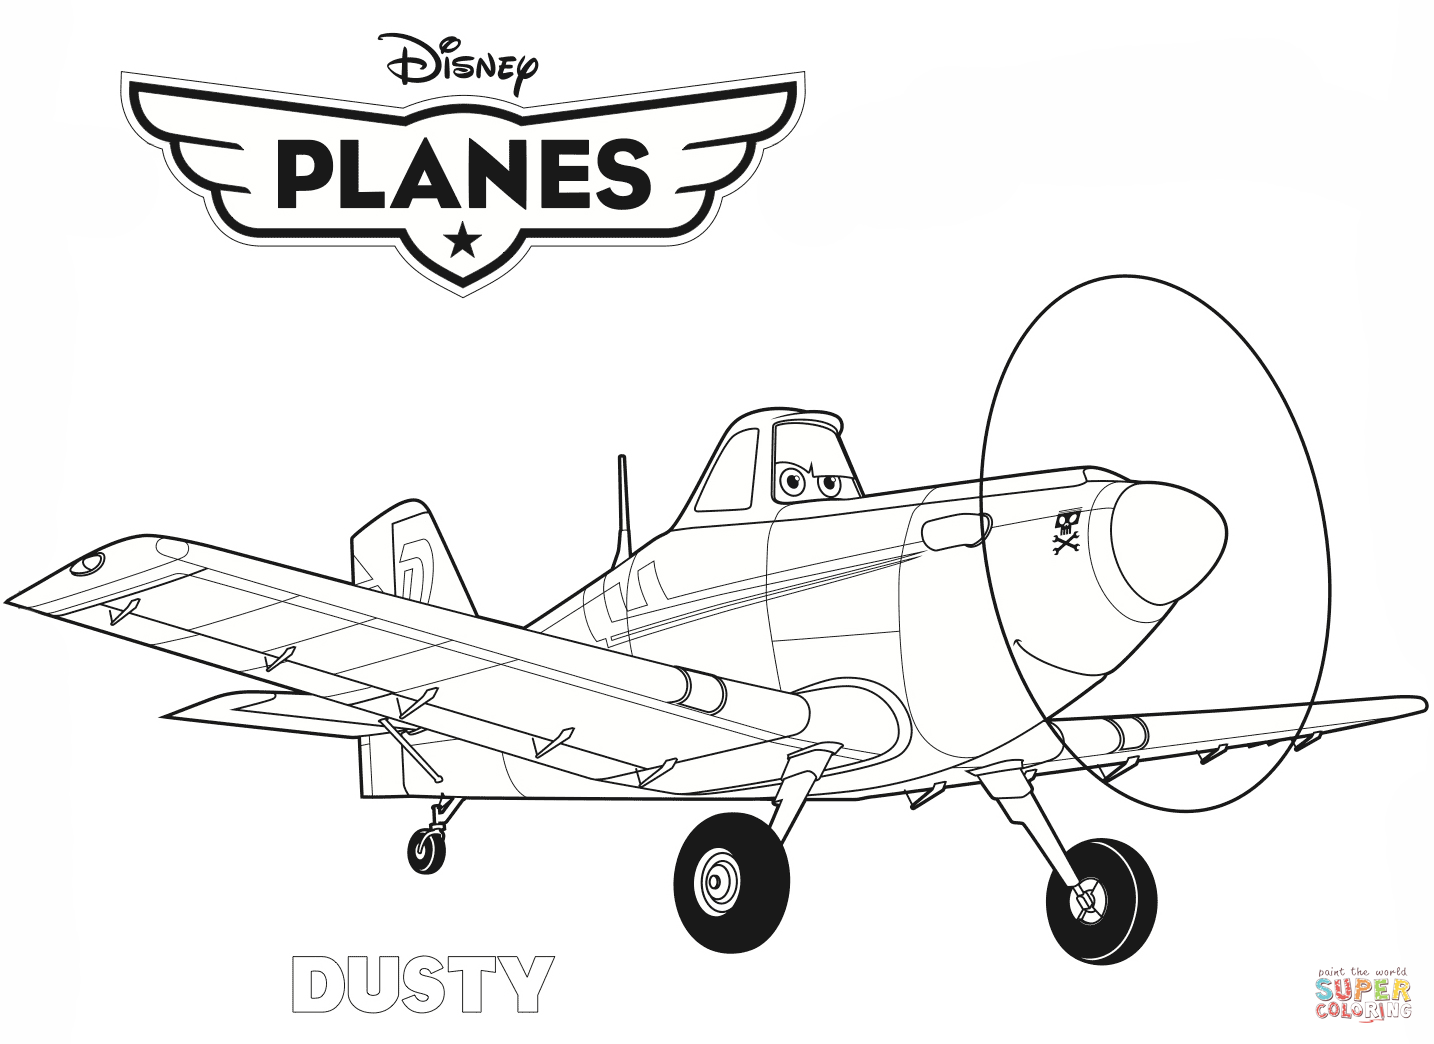 disney plane coloring pages - photo#14